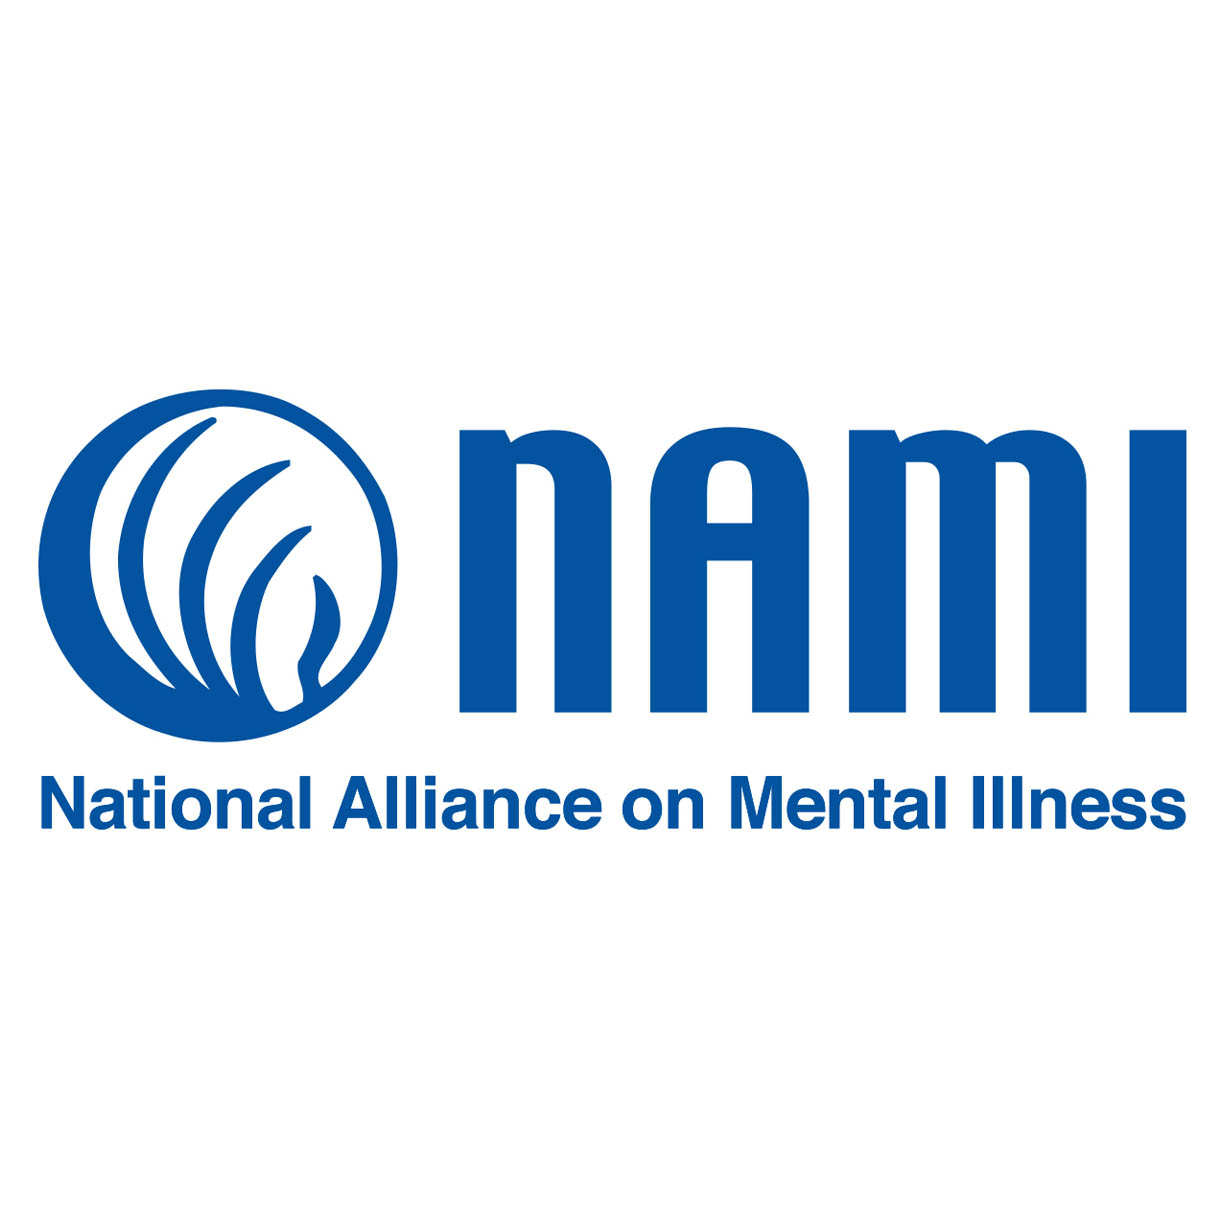 The nation's largest grassroots mental health organization dedicated to building better lives for the millions of Americans affected by mental illness.